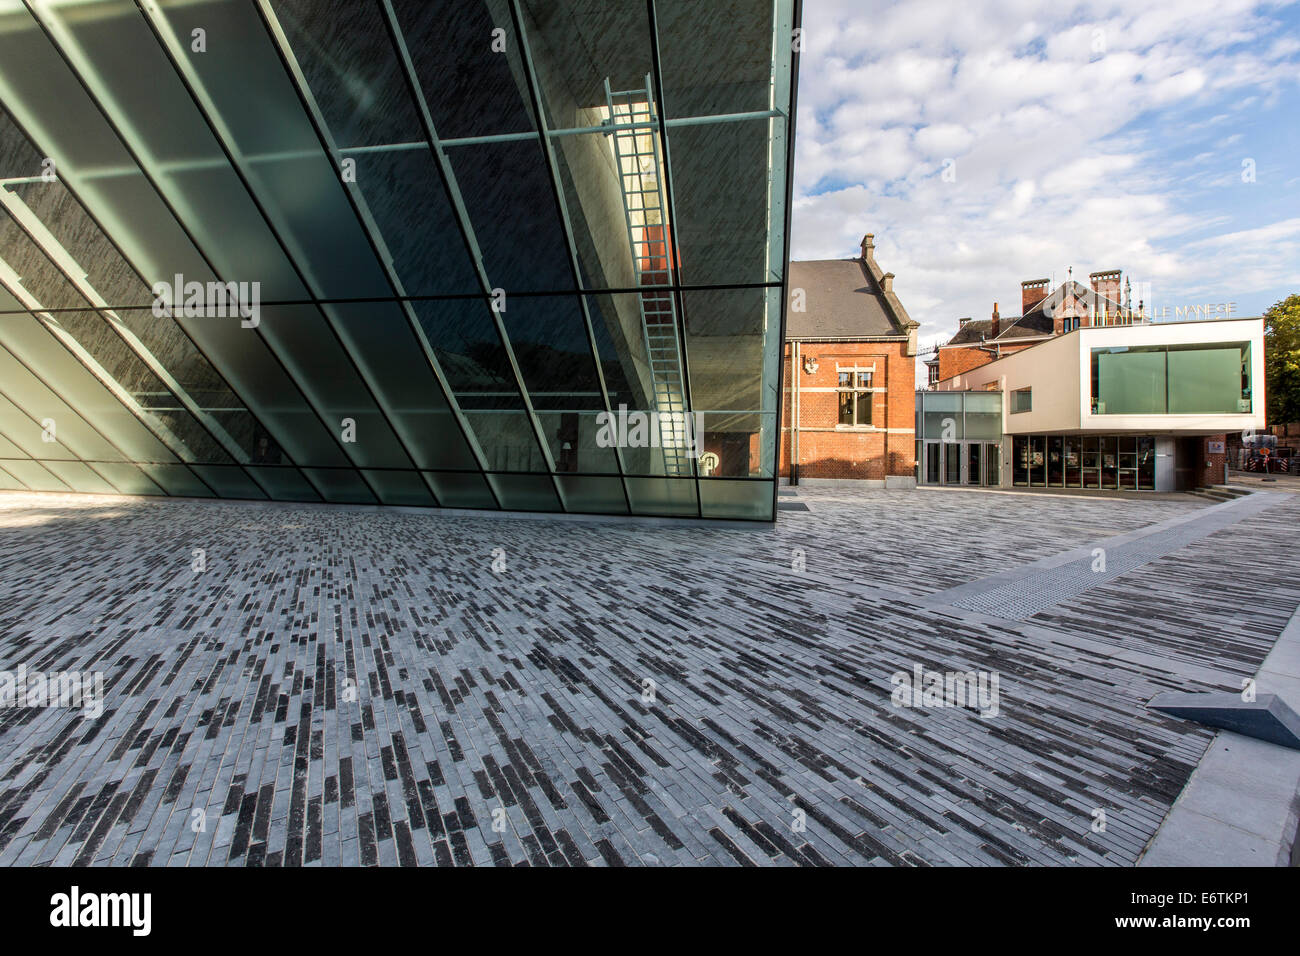 """""""Theatre Le Manege"""", theater in new and old buildings, central point for the Capital of Culture 2015, Mons, Belgium Stock Photo"""